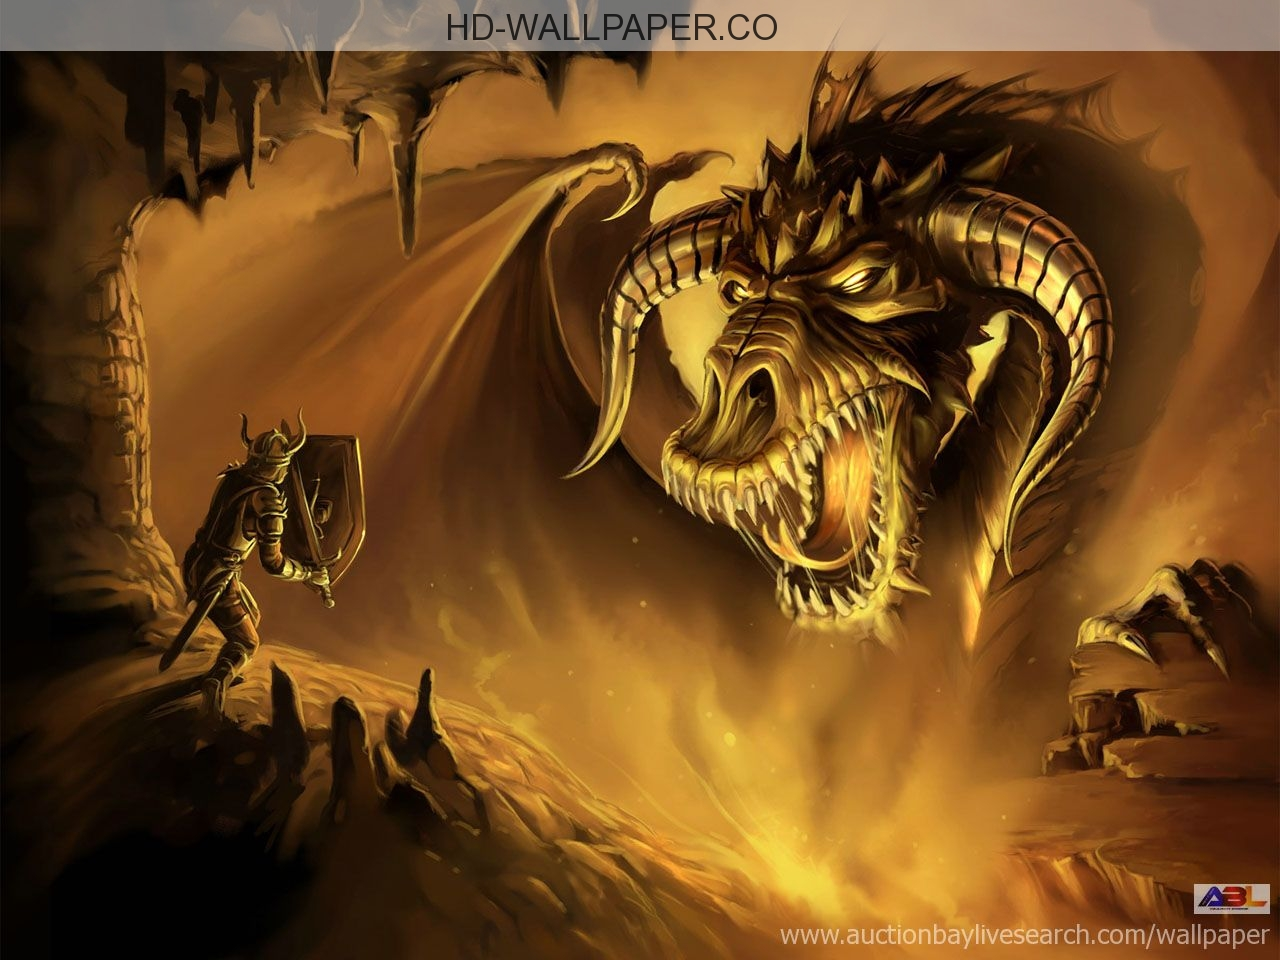 Cool Wallpaper Dragon Animated   Wallpoop   The Wallpaper Site 1280x960